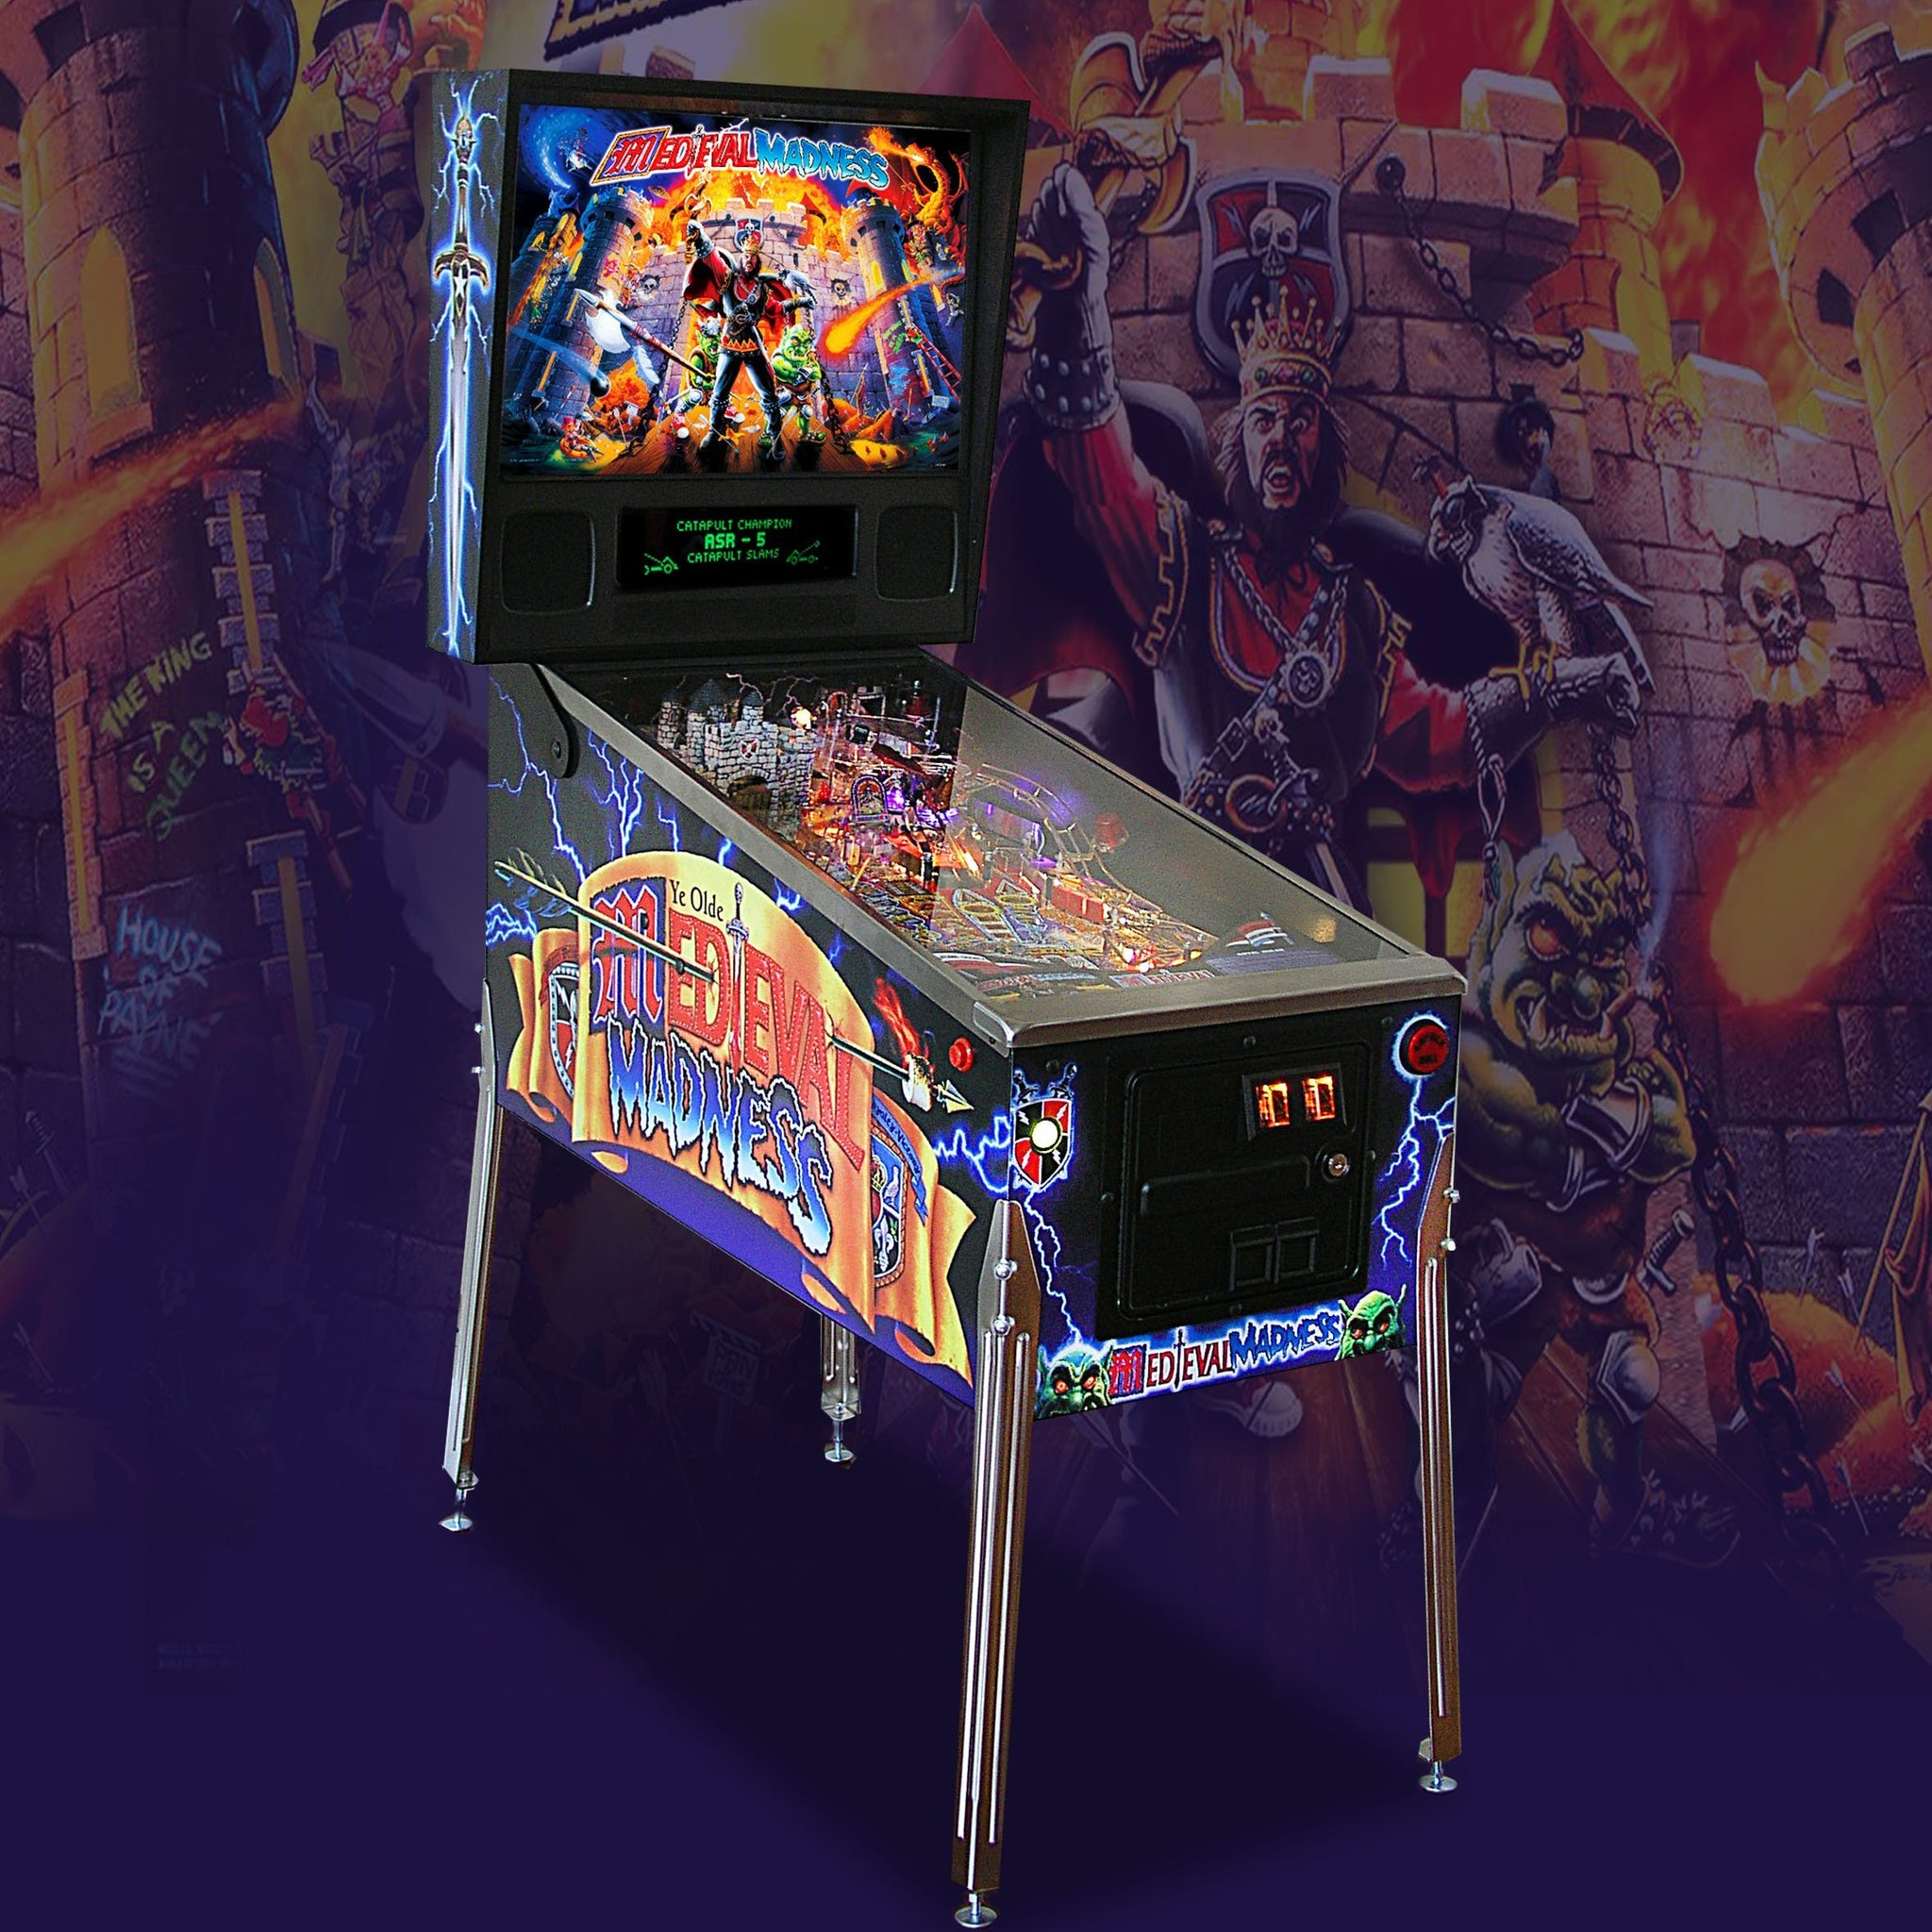 Original Williams Medieval Madness Pinball 'Coming Soon'